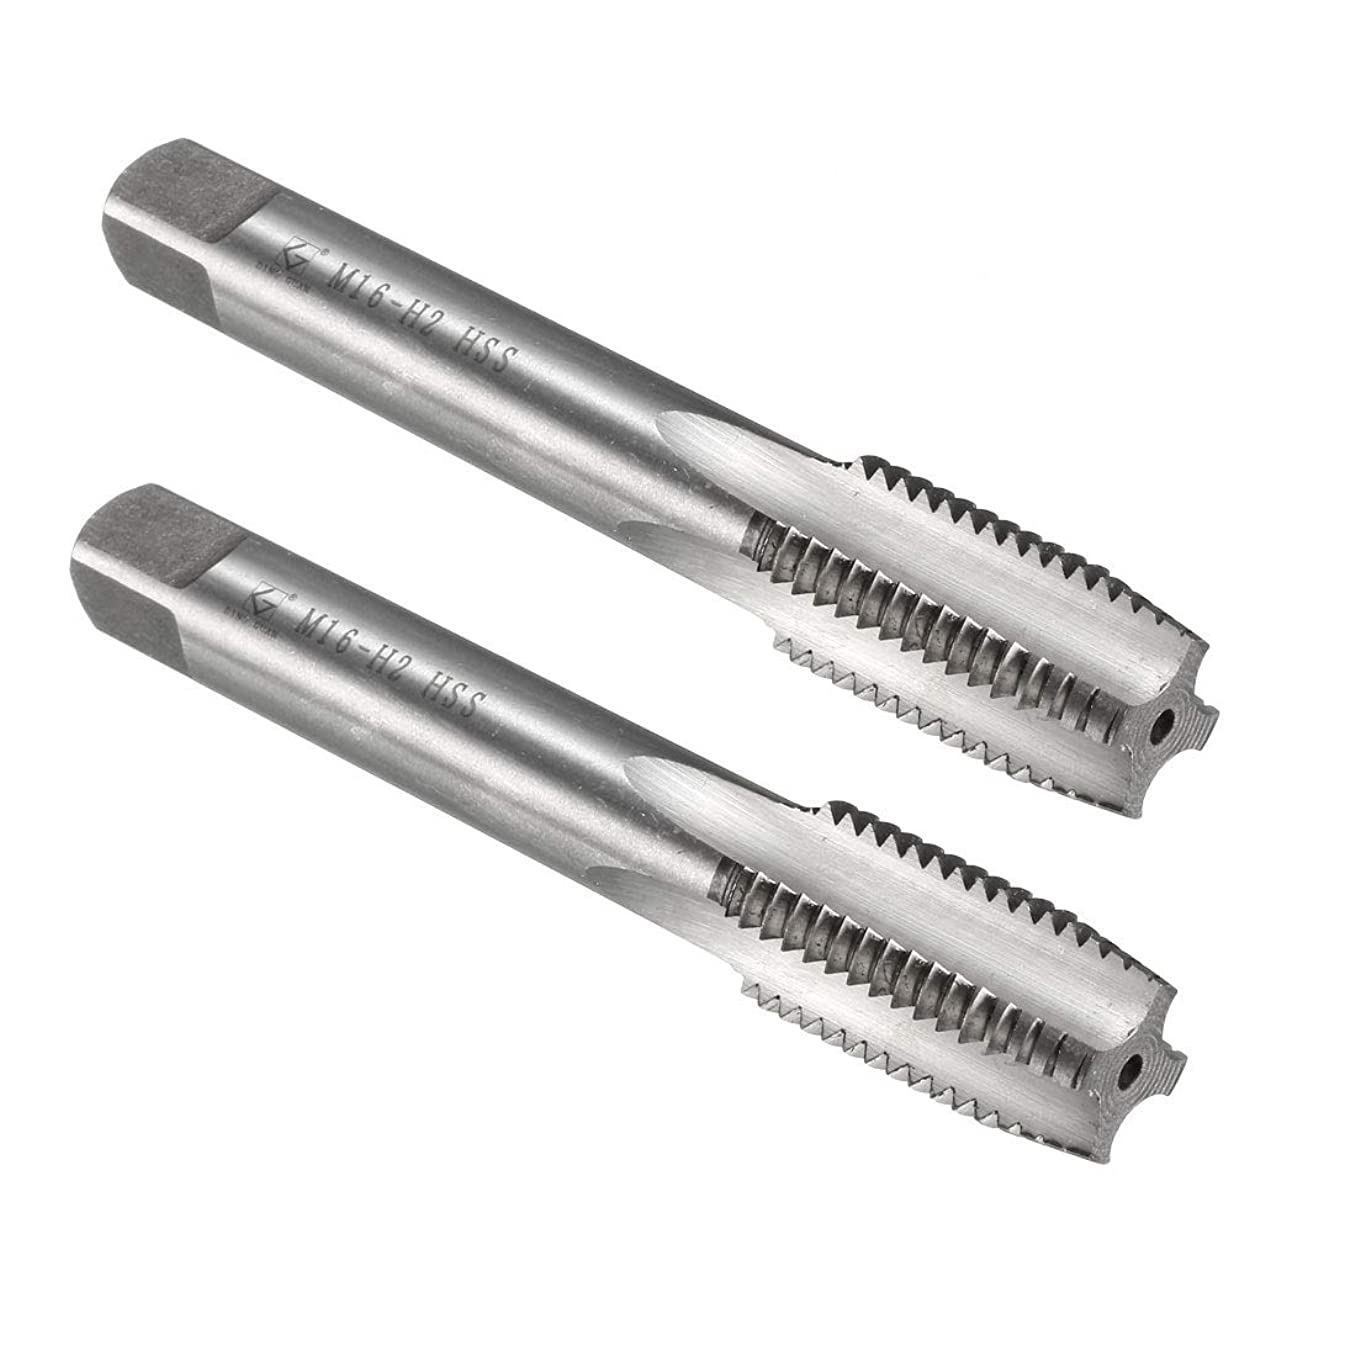 uxcell Metric Tap M16 x 2mm Pitch H2 Right Hand Thread Plug HSS for Threading Machine Electric Drill DIY 2pc